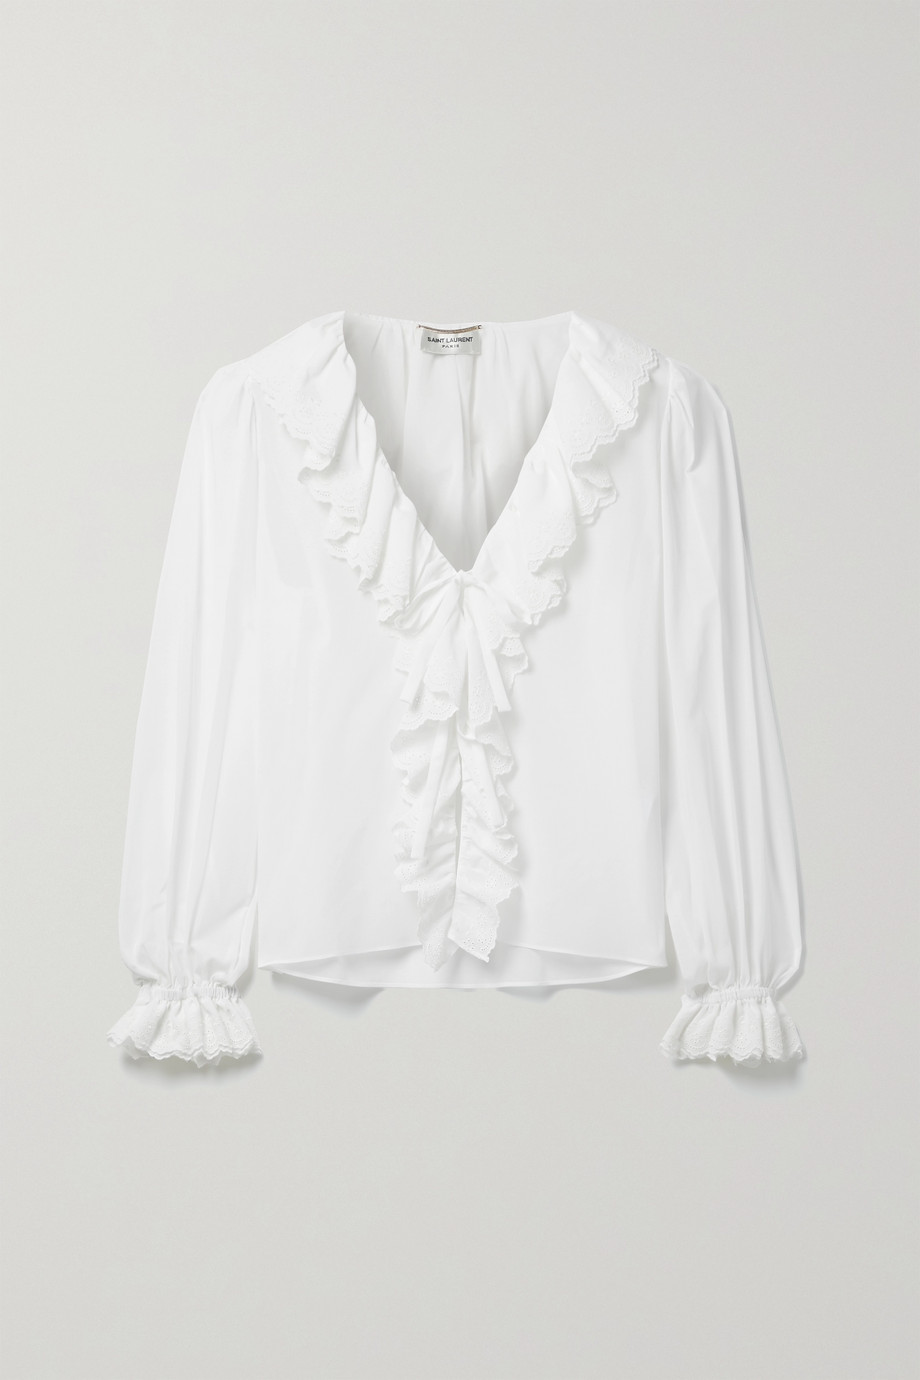 SAINT LAURENT Ruffled broderie anglaise-trimmed cotton-voile blouse